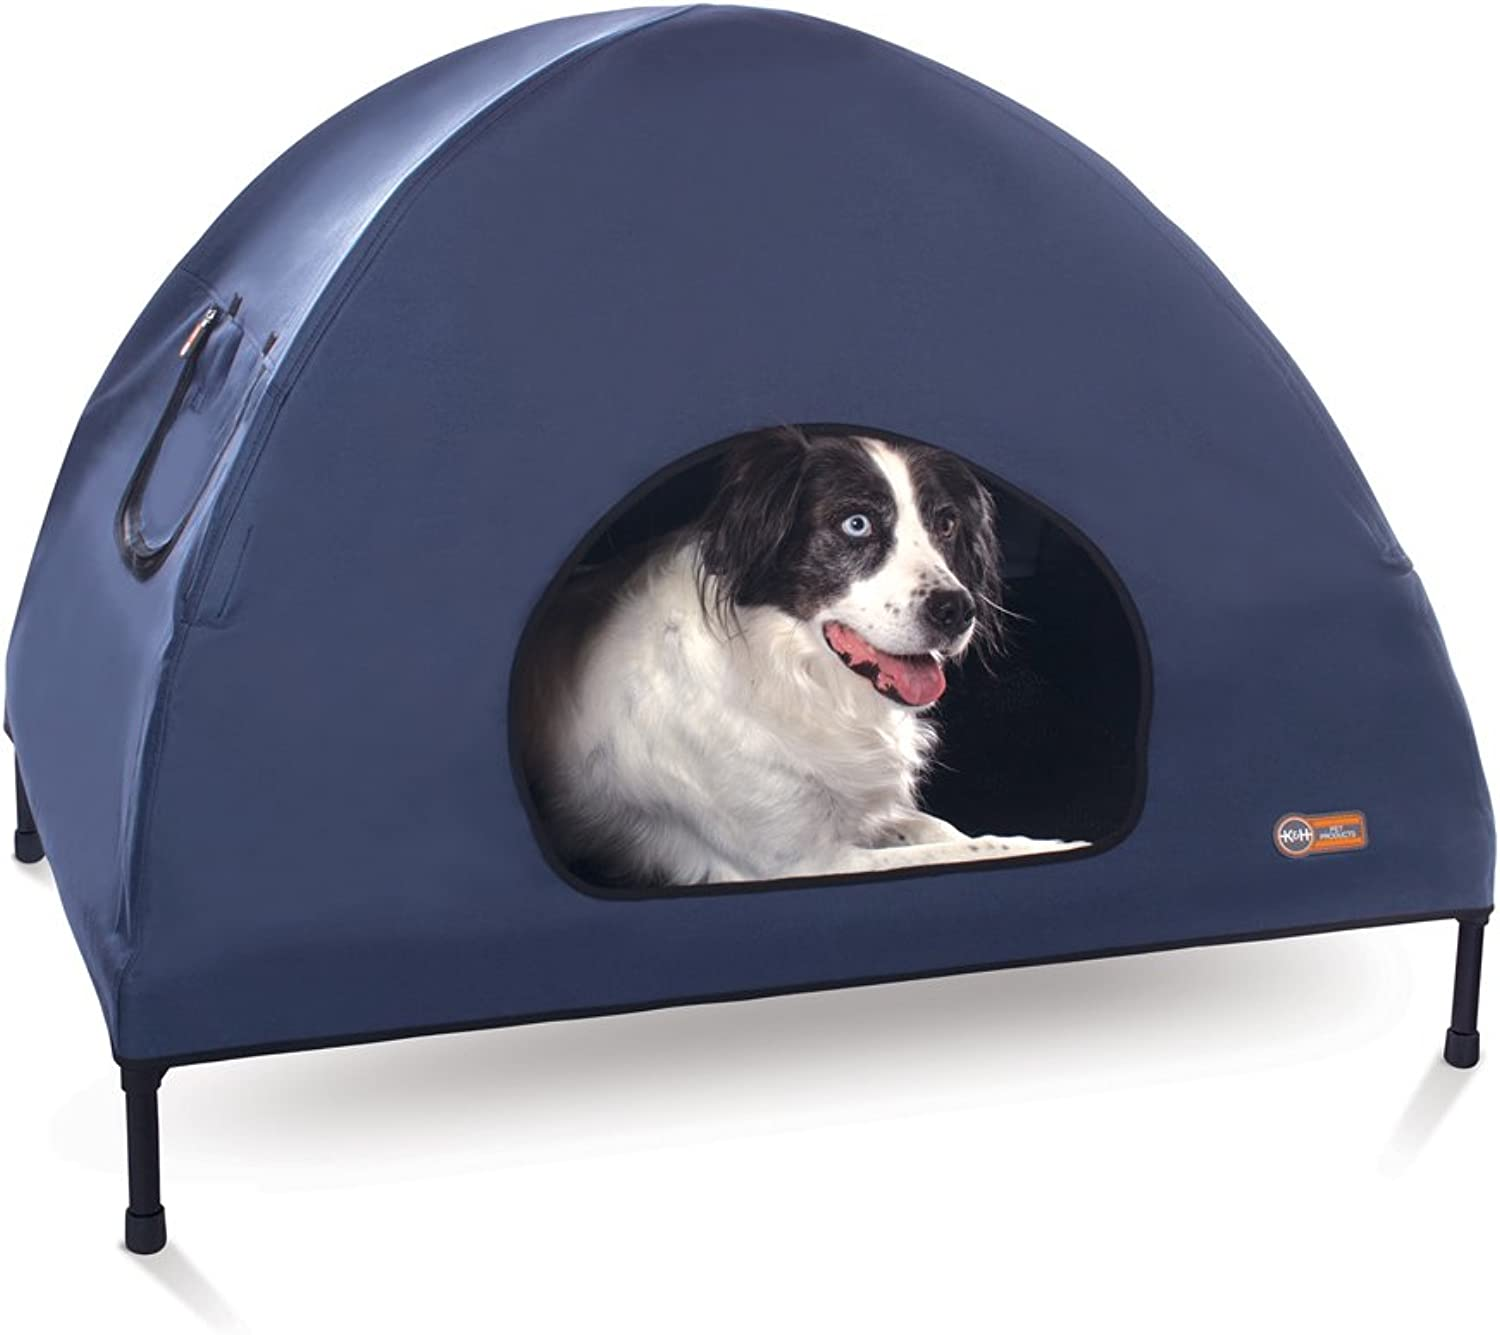 K&H Pet Products Original Pet Cot House Large Navy bluee  Indoor & Outdoor Elevated Pet Bed & Shelter (30  x 42  x 32 )